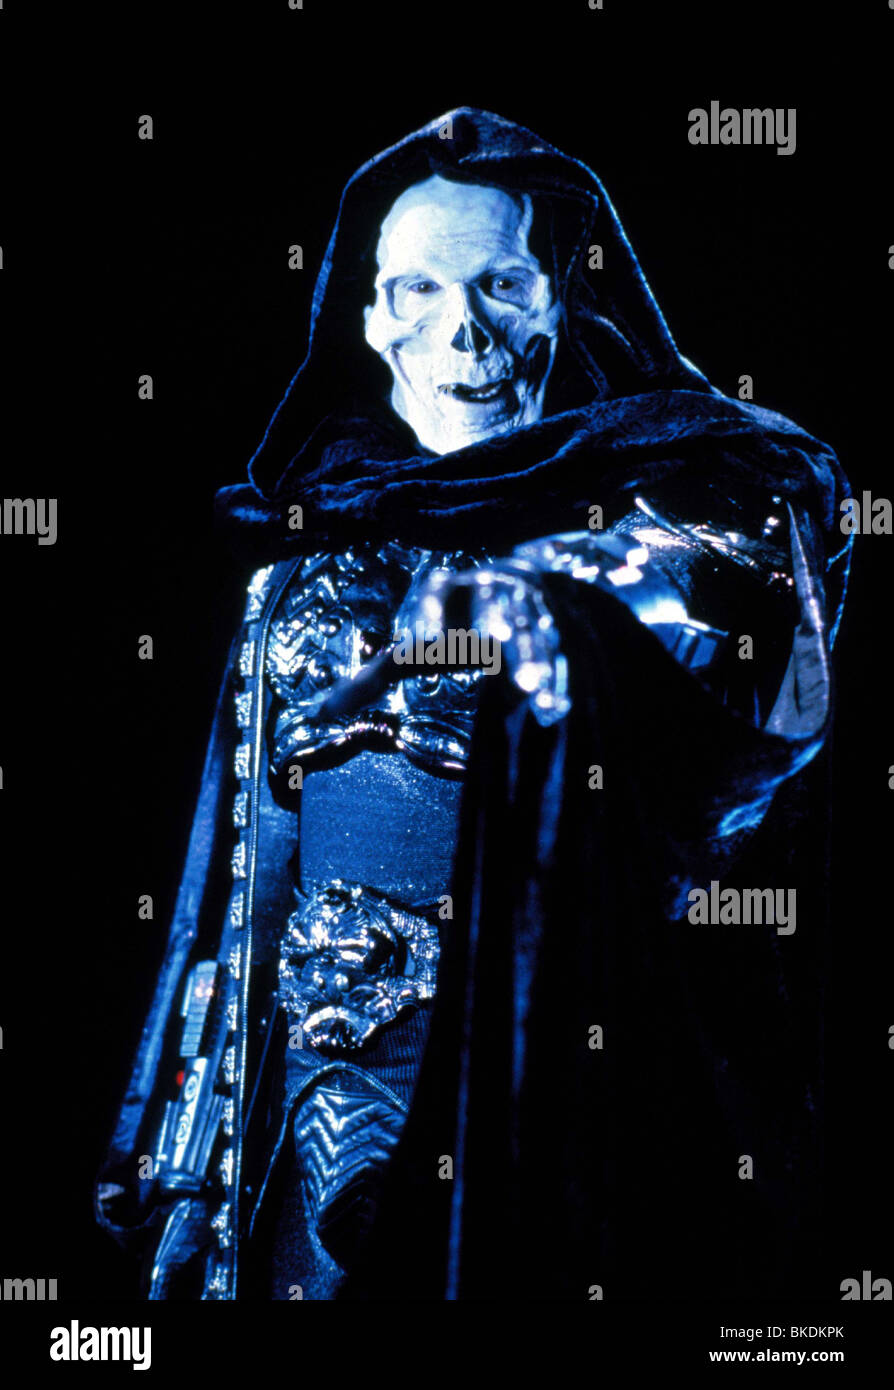 MASTERS OF THE UNIVERSE (1987) FRANK LANGELLA MOU 038 - Stock Image